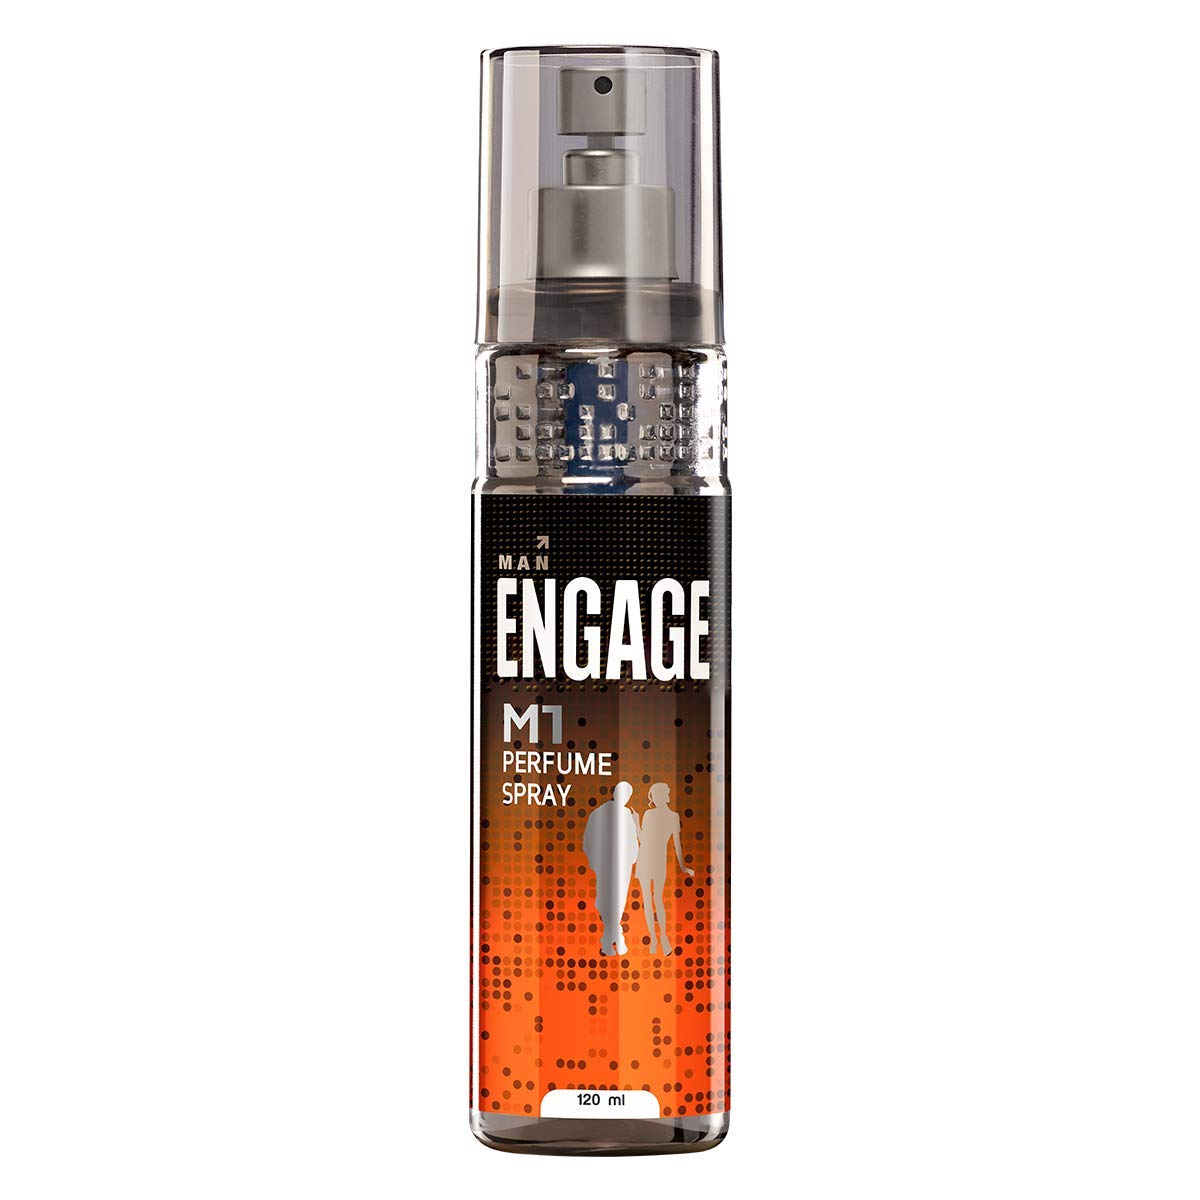 Engage M1 Perfume Spray 120ml